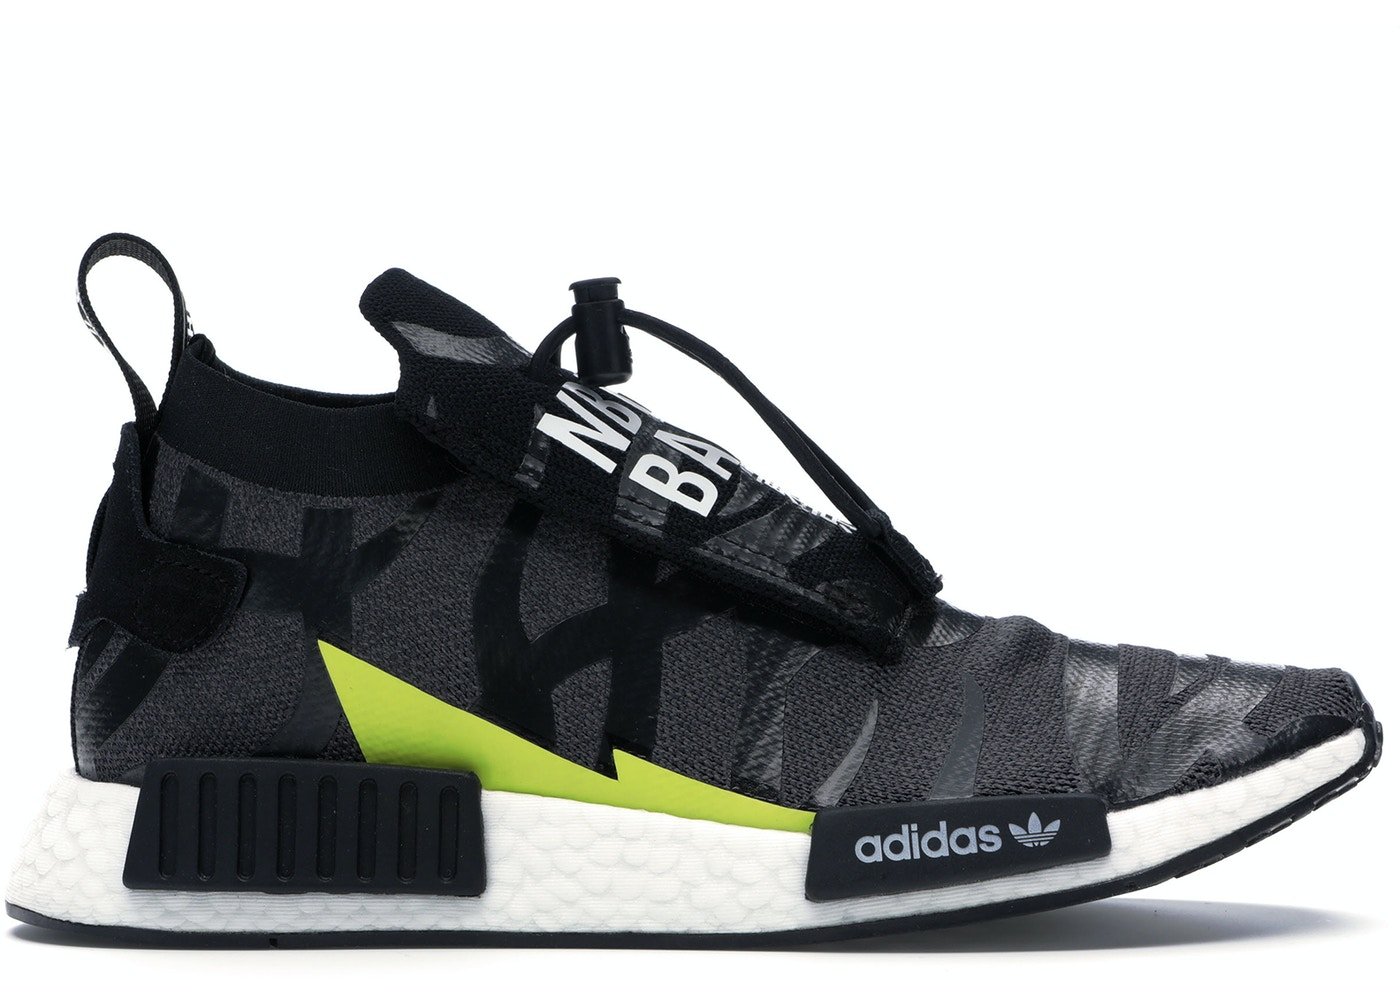 49cef21b72e6d adidas NMD TS1 Bape x Neighborhood - EE9702